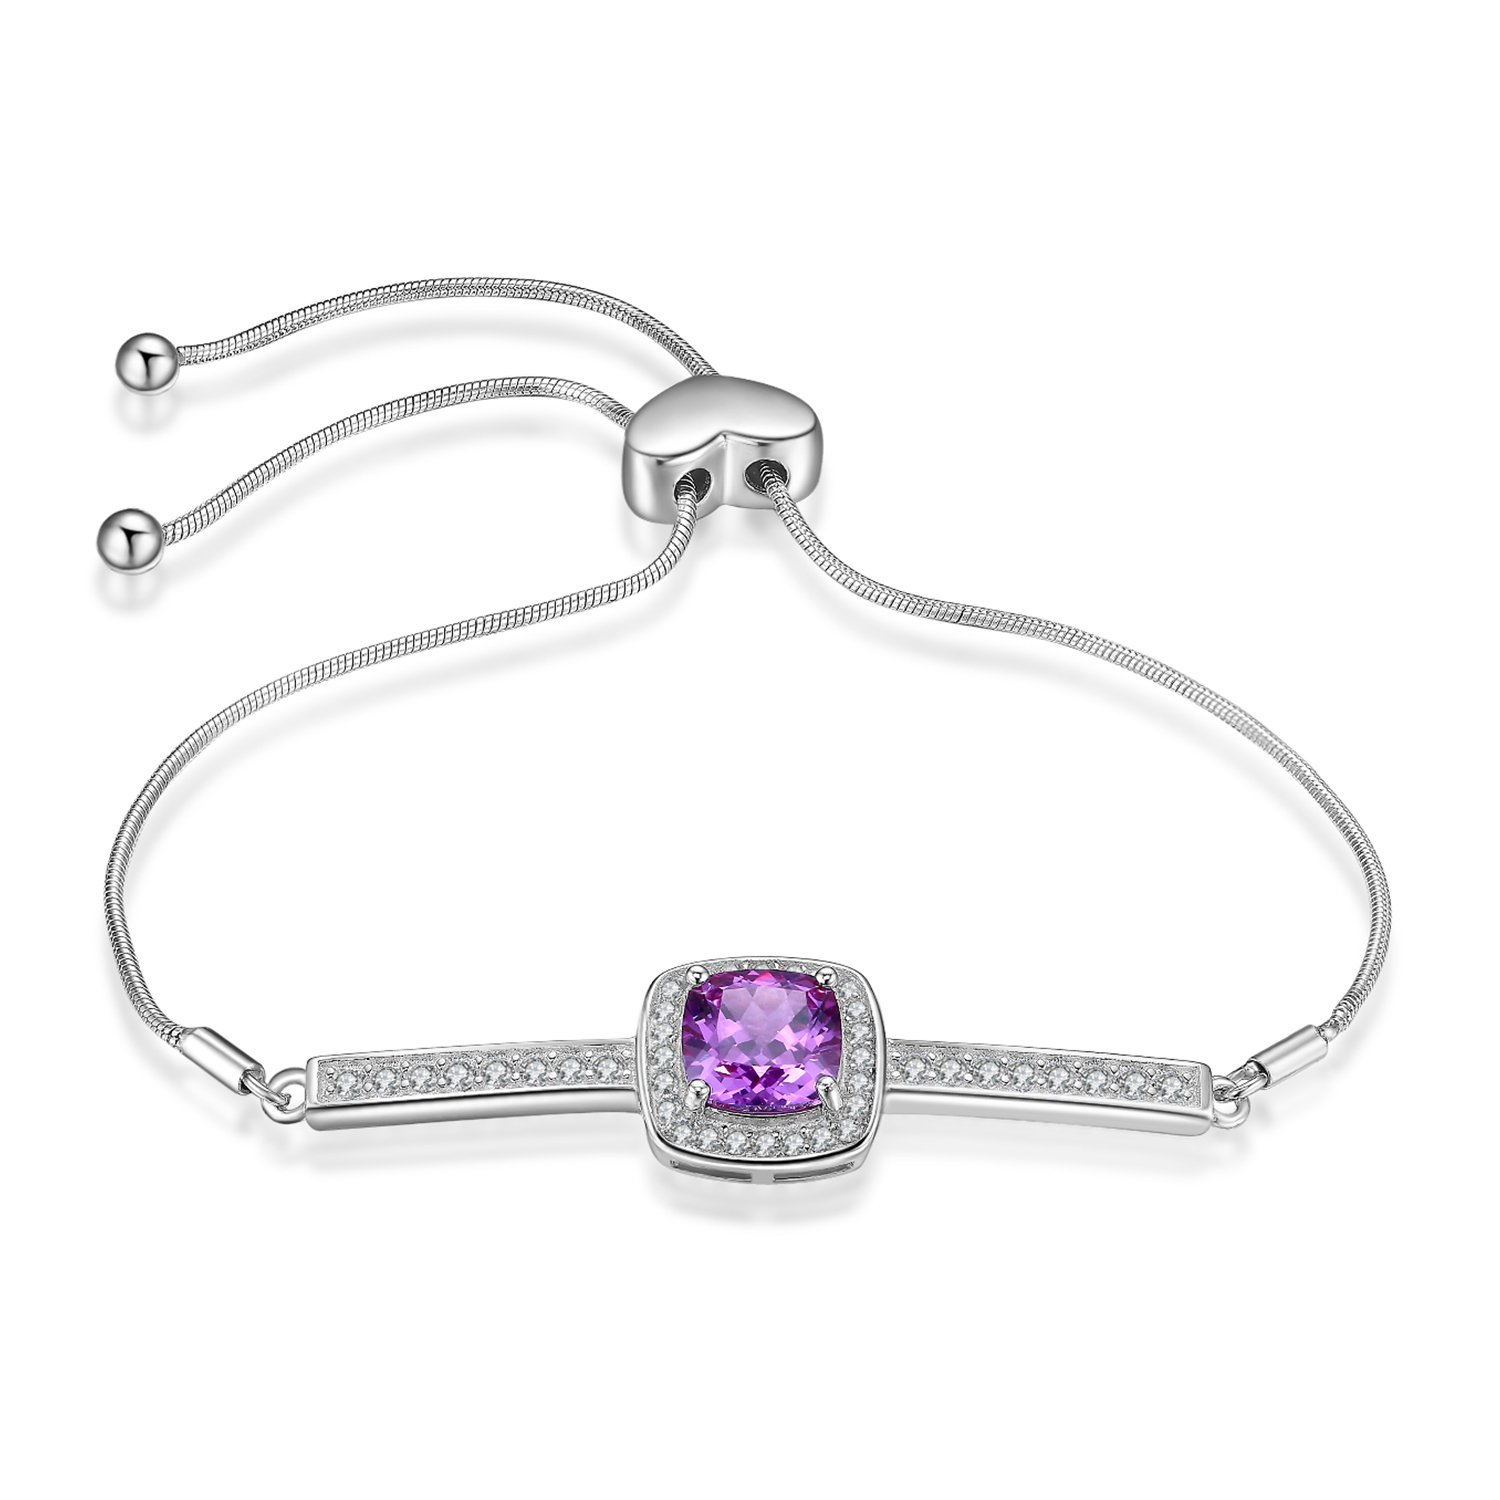 JewelryPalace Elegant 1.8ct Created Alexandrite Sapphire Halo Adjustable Bracelet 925 Sterling Silver AB202361